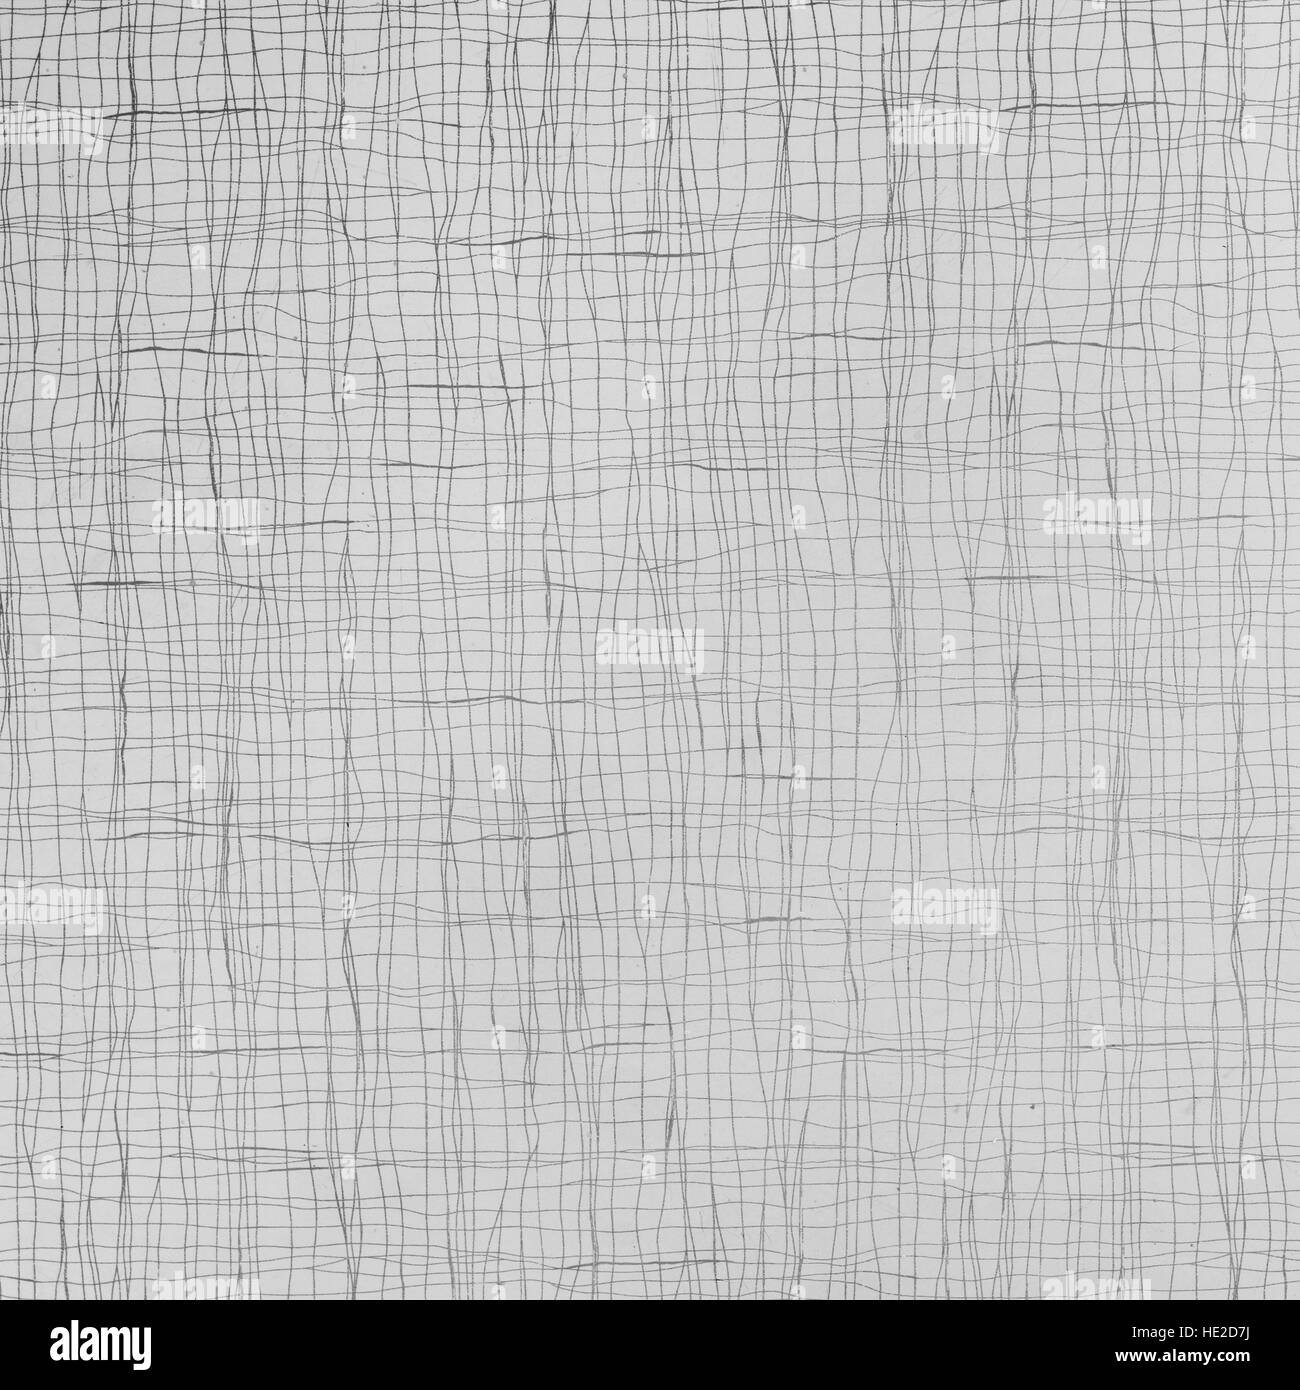 Plastic Table Top Texture With Wavy Lines Stock Photo ...